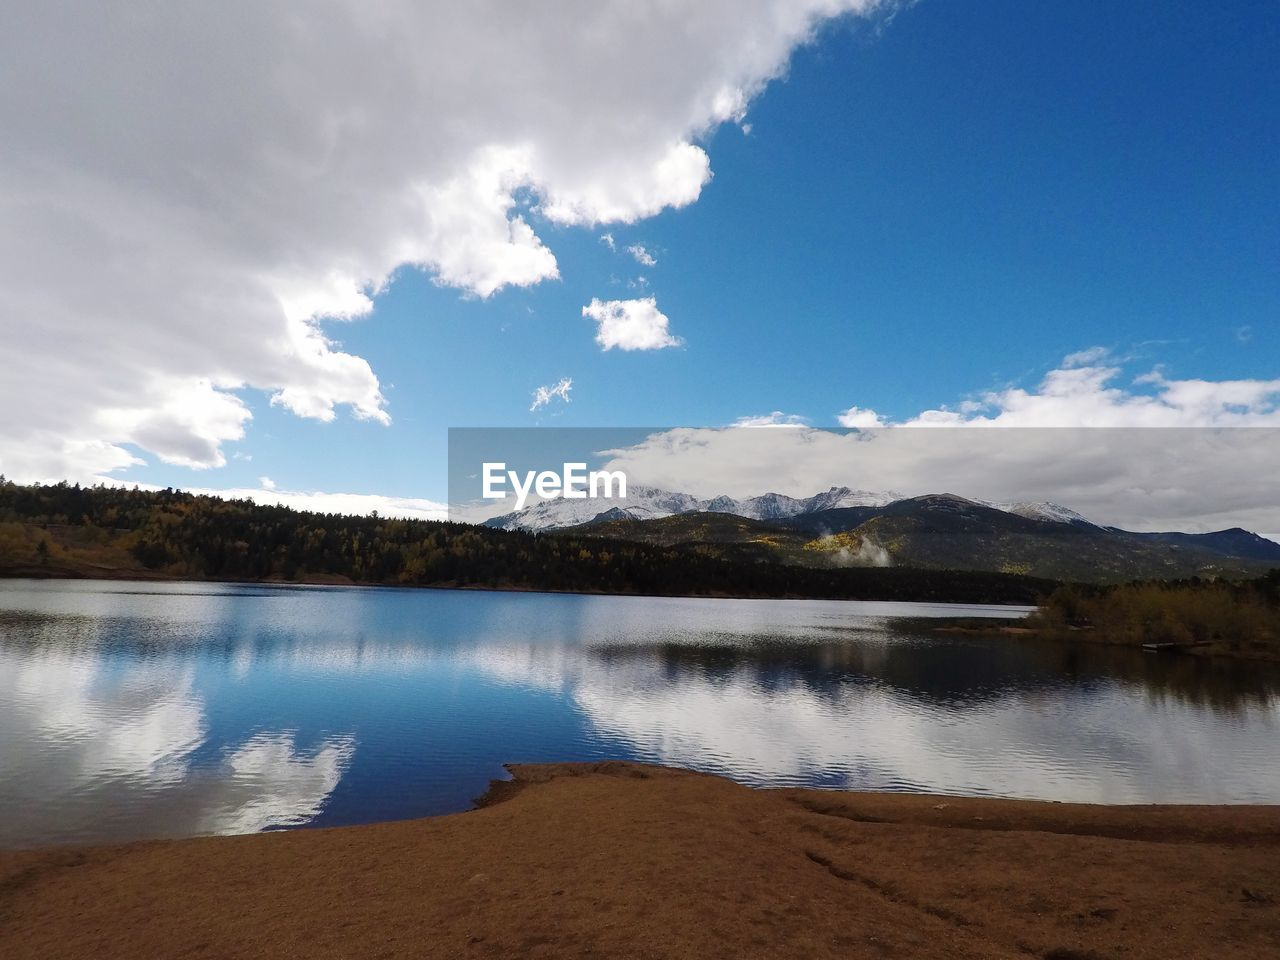 scenics, lake, tranquil scene, beauty in nature, sky, tranquility, mountain, cloud - sky, water, nature, no people, outdoors, day, mountain range, landscape, tree